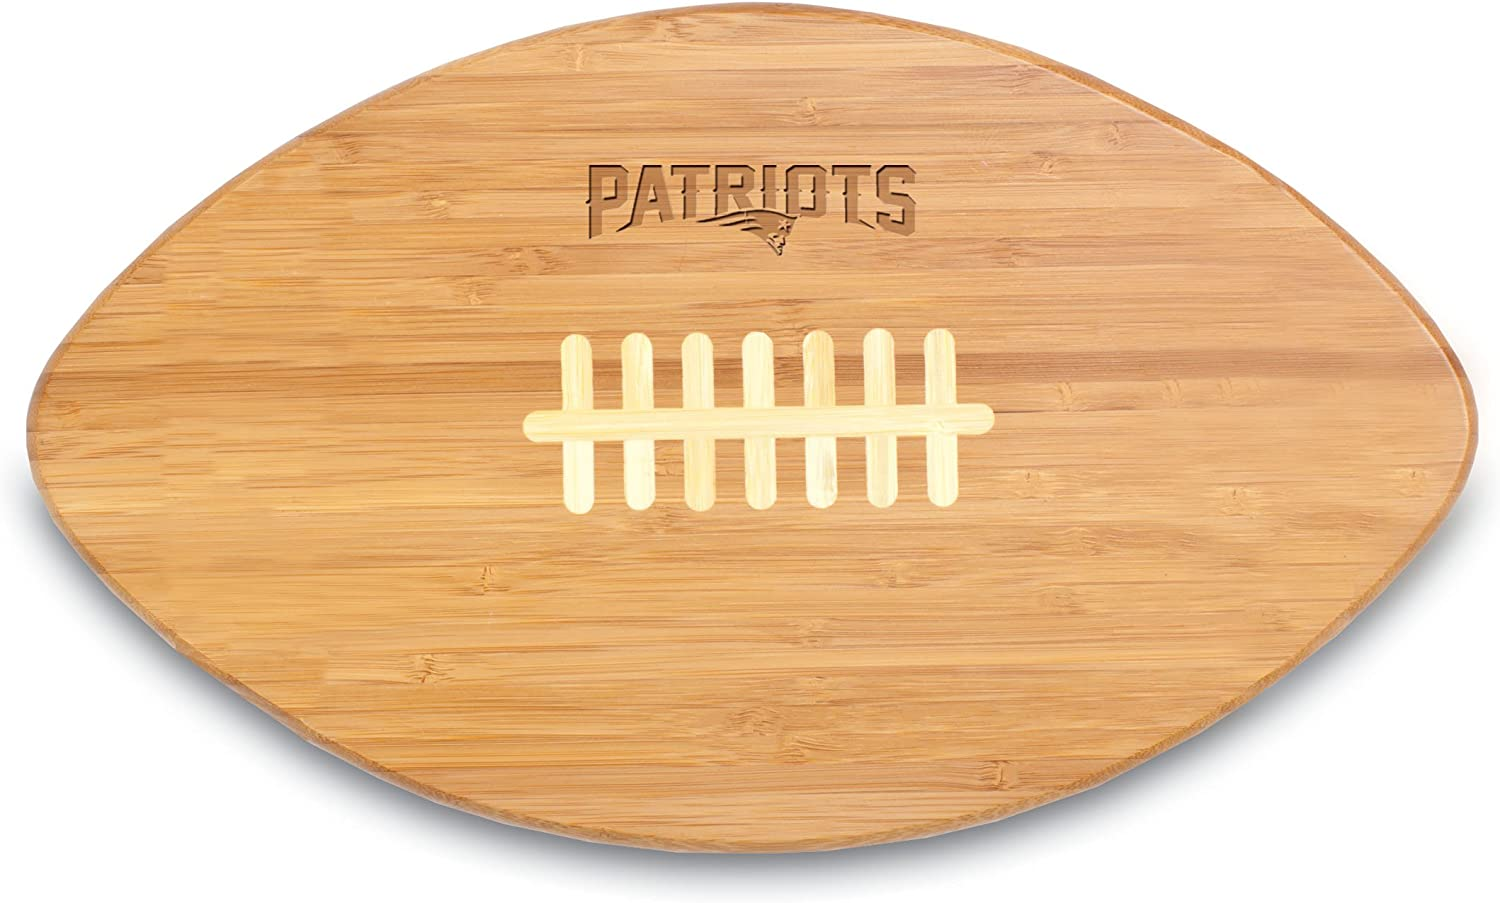 NFL New England Patriots Touchdown Pro! Bamboo Cutting Board, 16-Inch